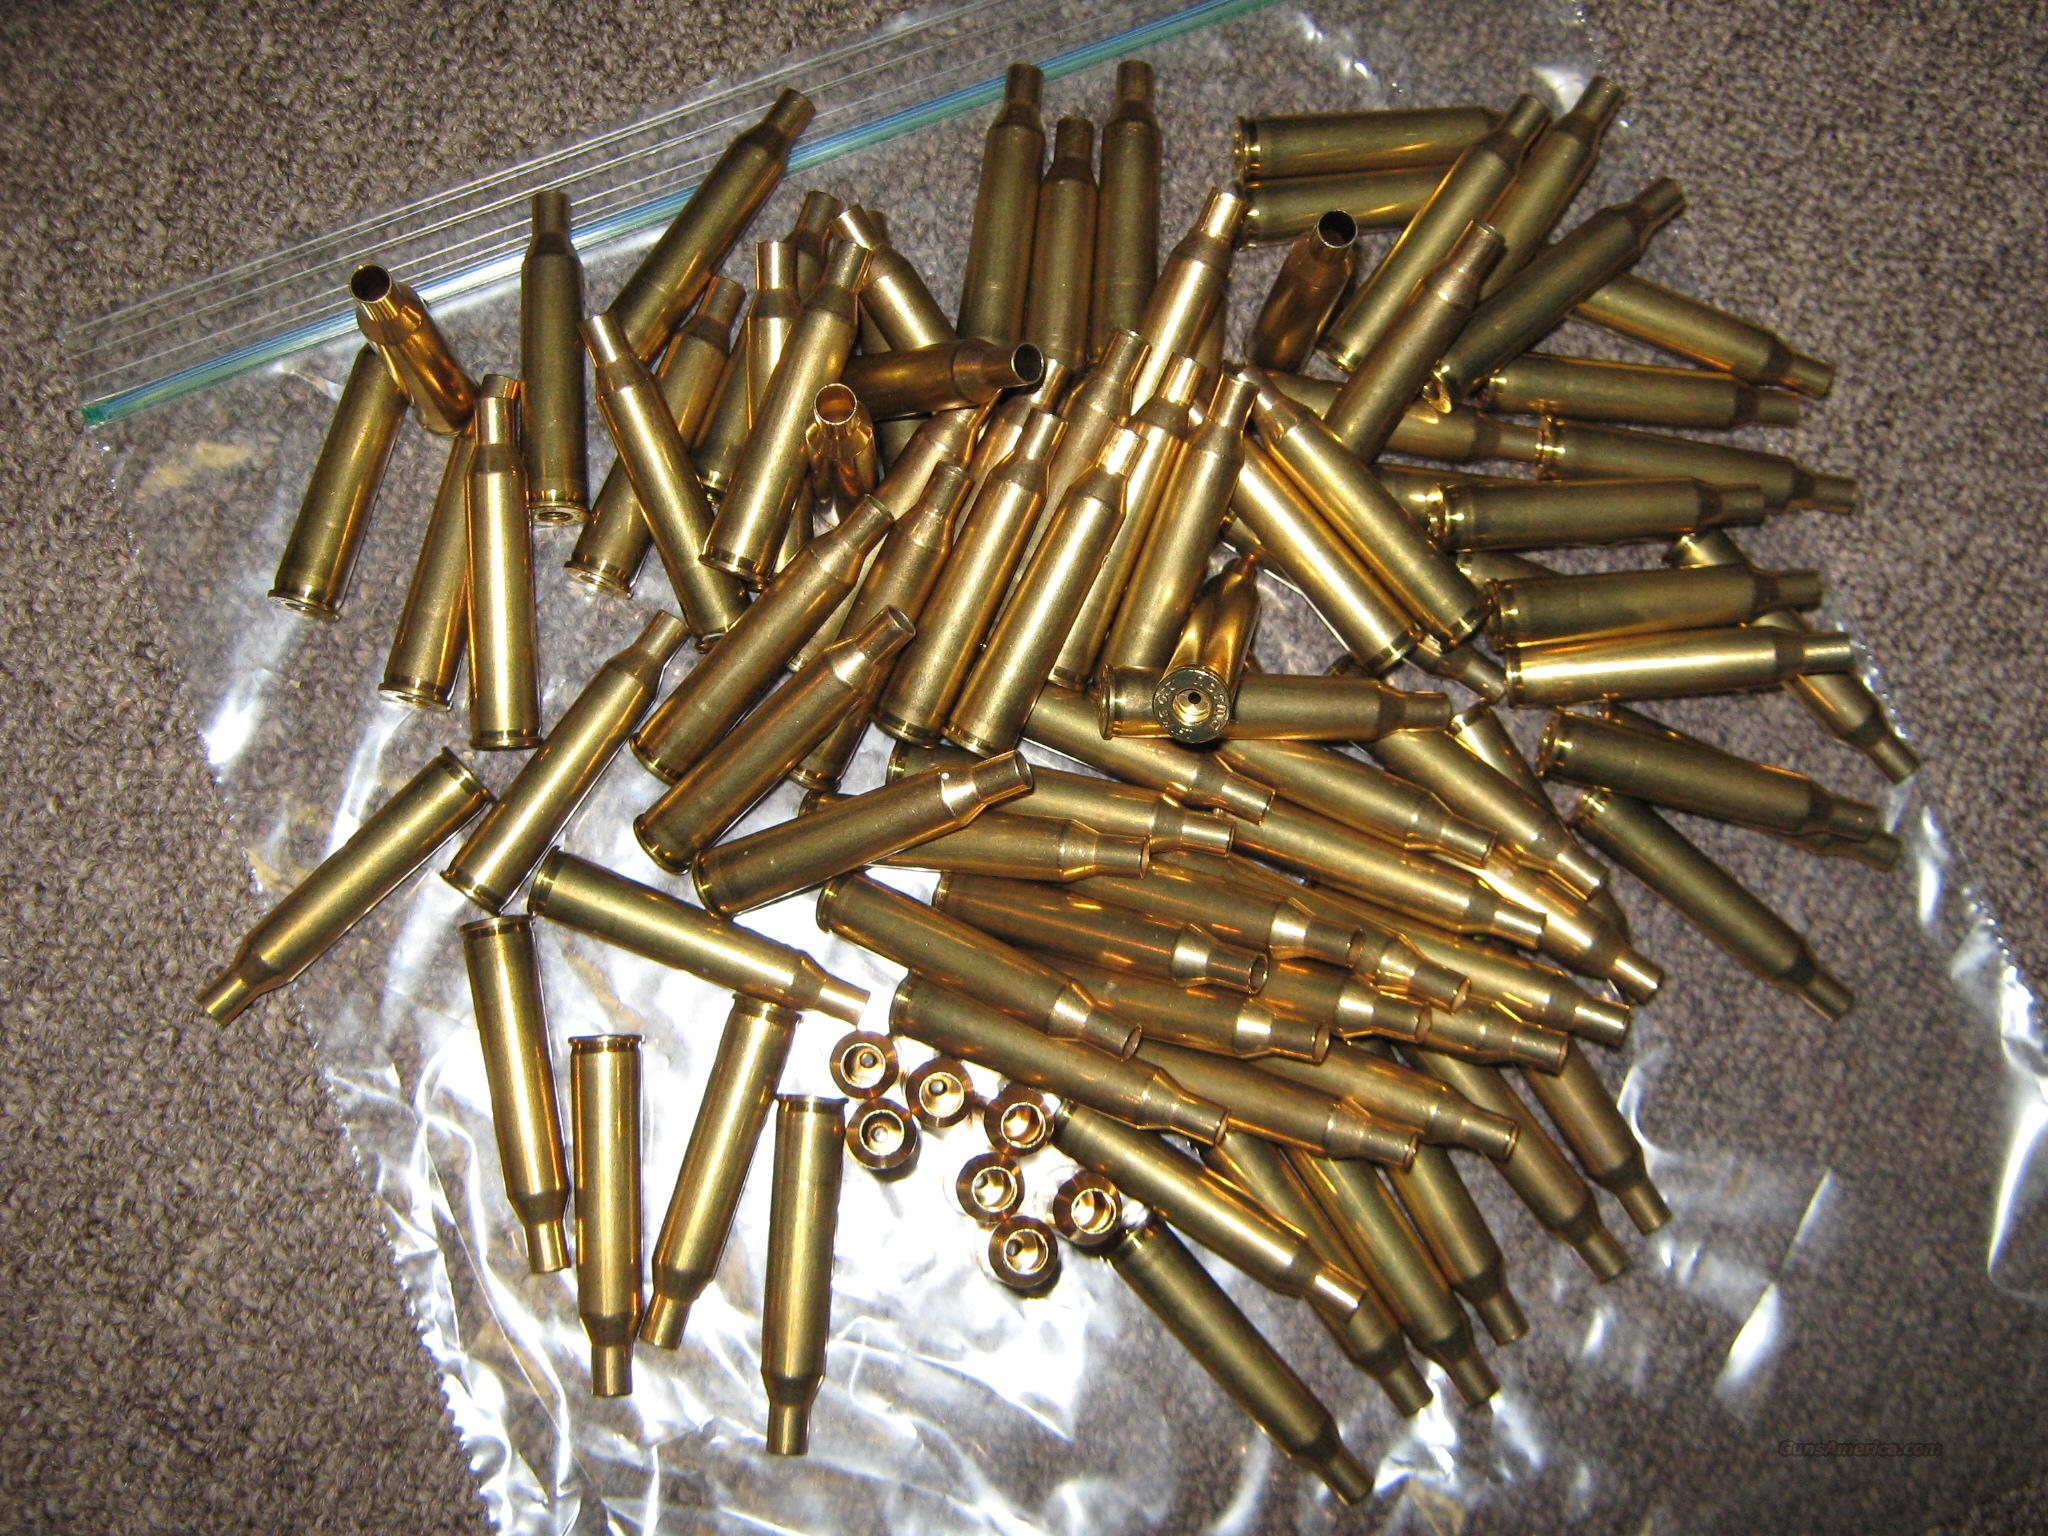 Norma 220 Swift Brass Unfired  Non-Guns > Reloading > Components > Brass